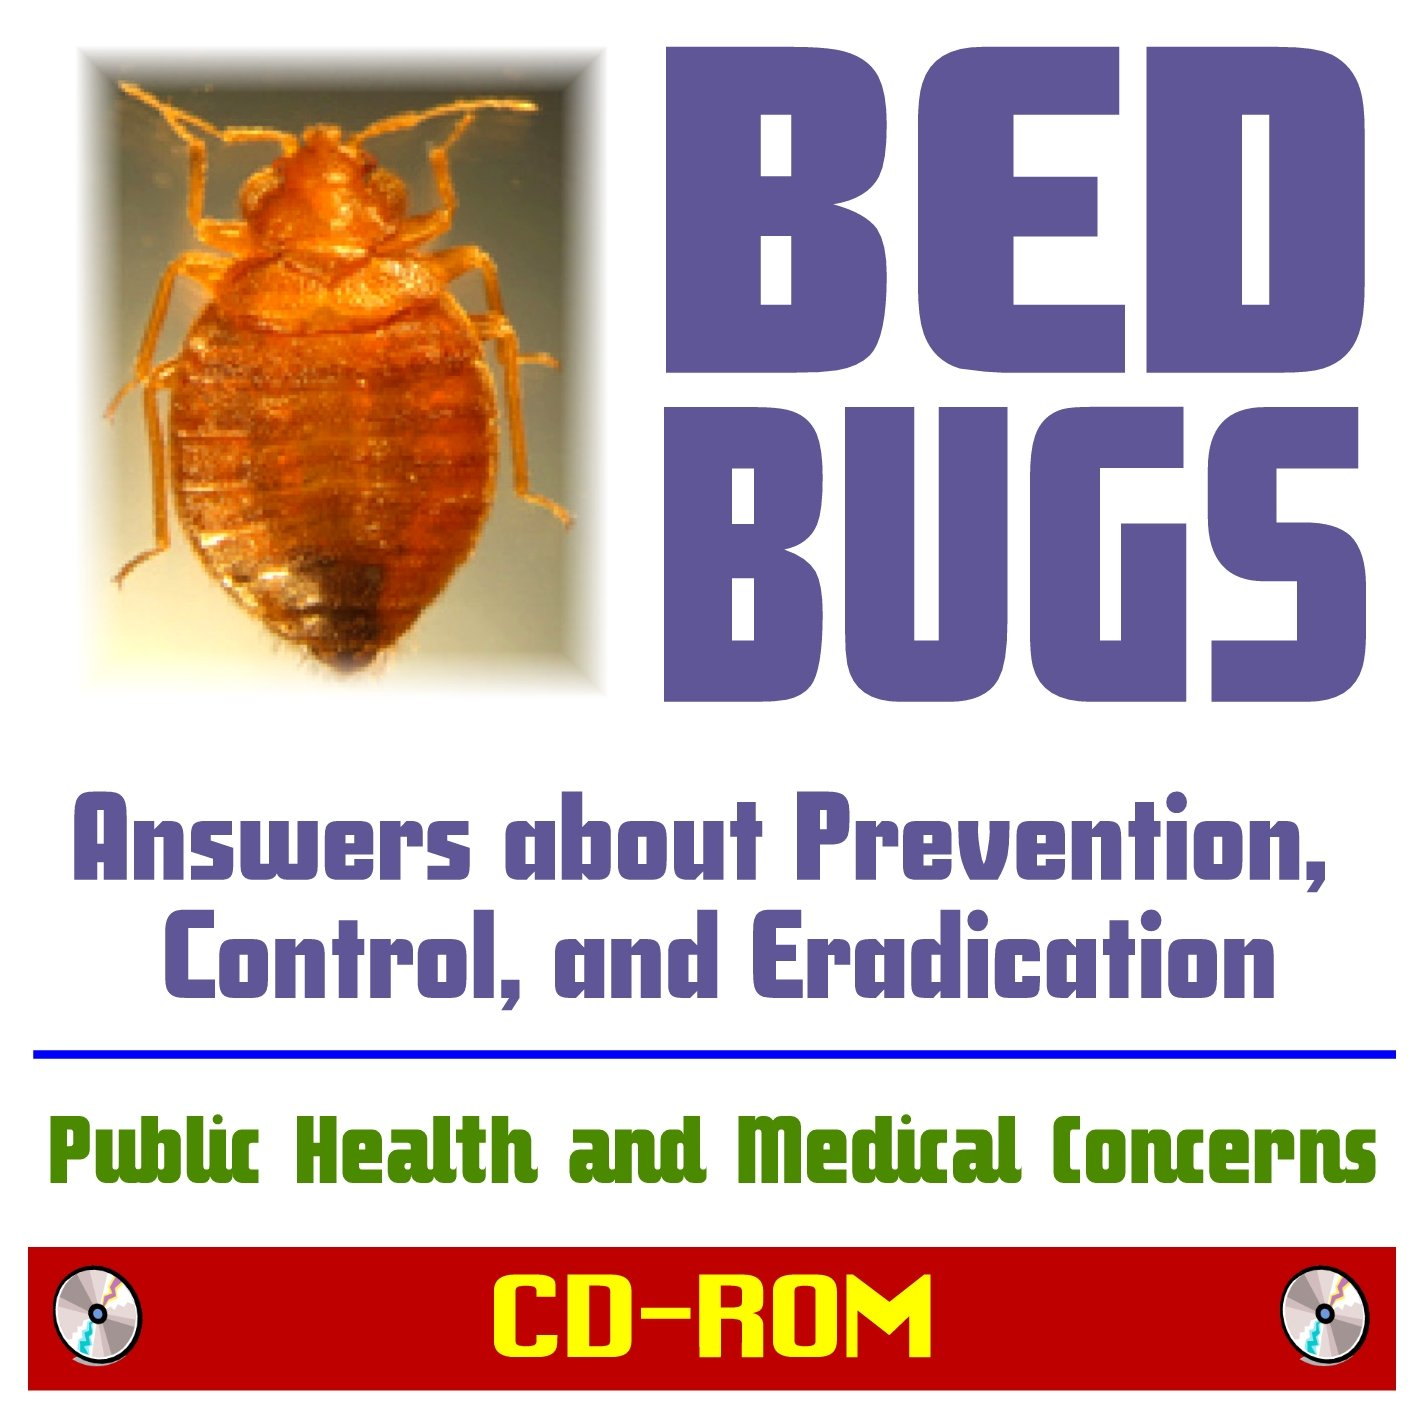 Bed Bugs Answers About Prevention Control And Eradication Of Cimex Lectularius Public Health And Medical Concerns Bedbug Pesticides And Pest Control Background Information Cd Rom Pm Medical Health News U S Government 9781422053362 Amazon Com